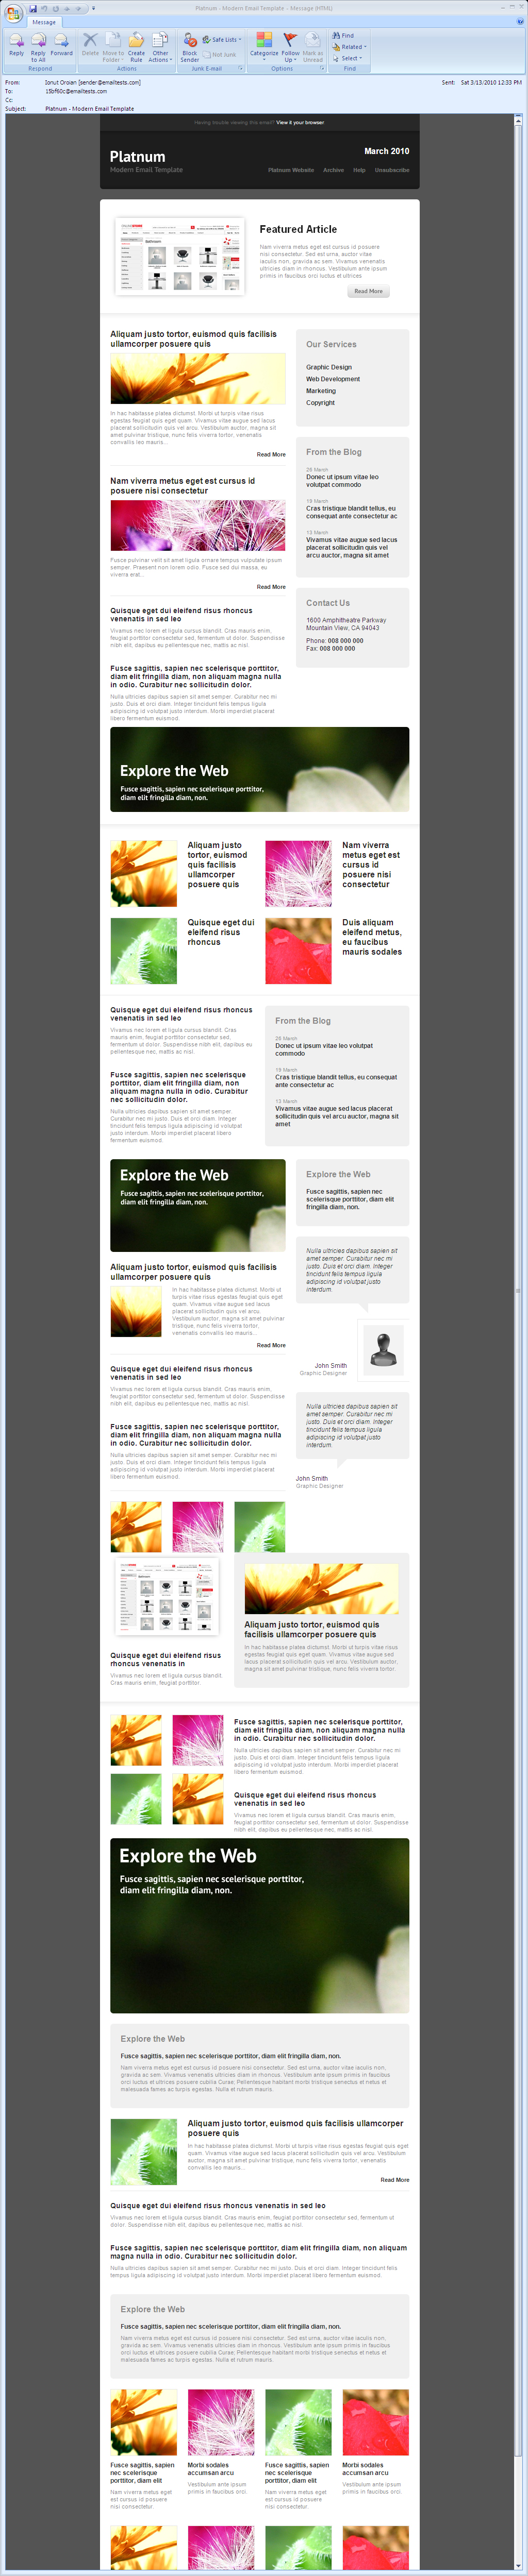 Platnum Email Template, 6 Layouts, 8 Colors - Outlook 2007 - All elements listed.